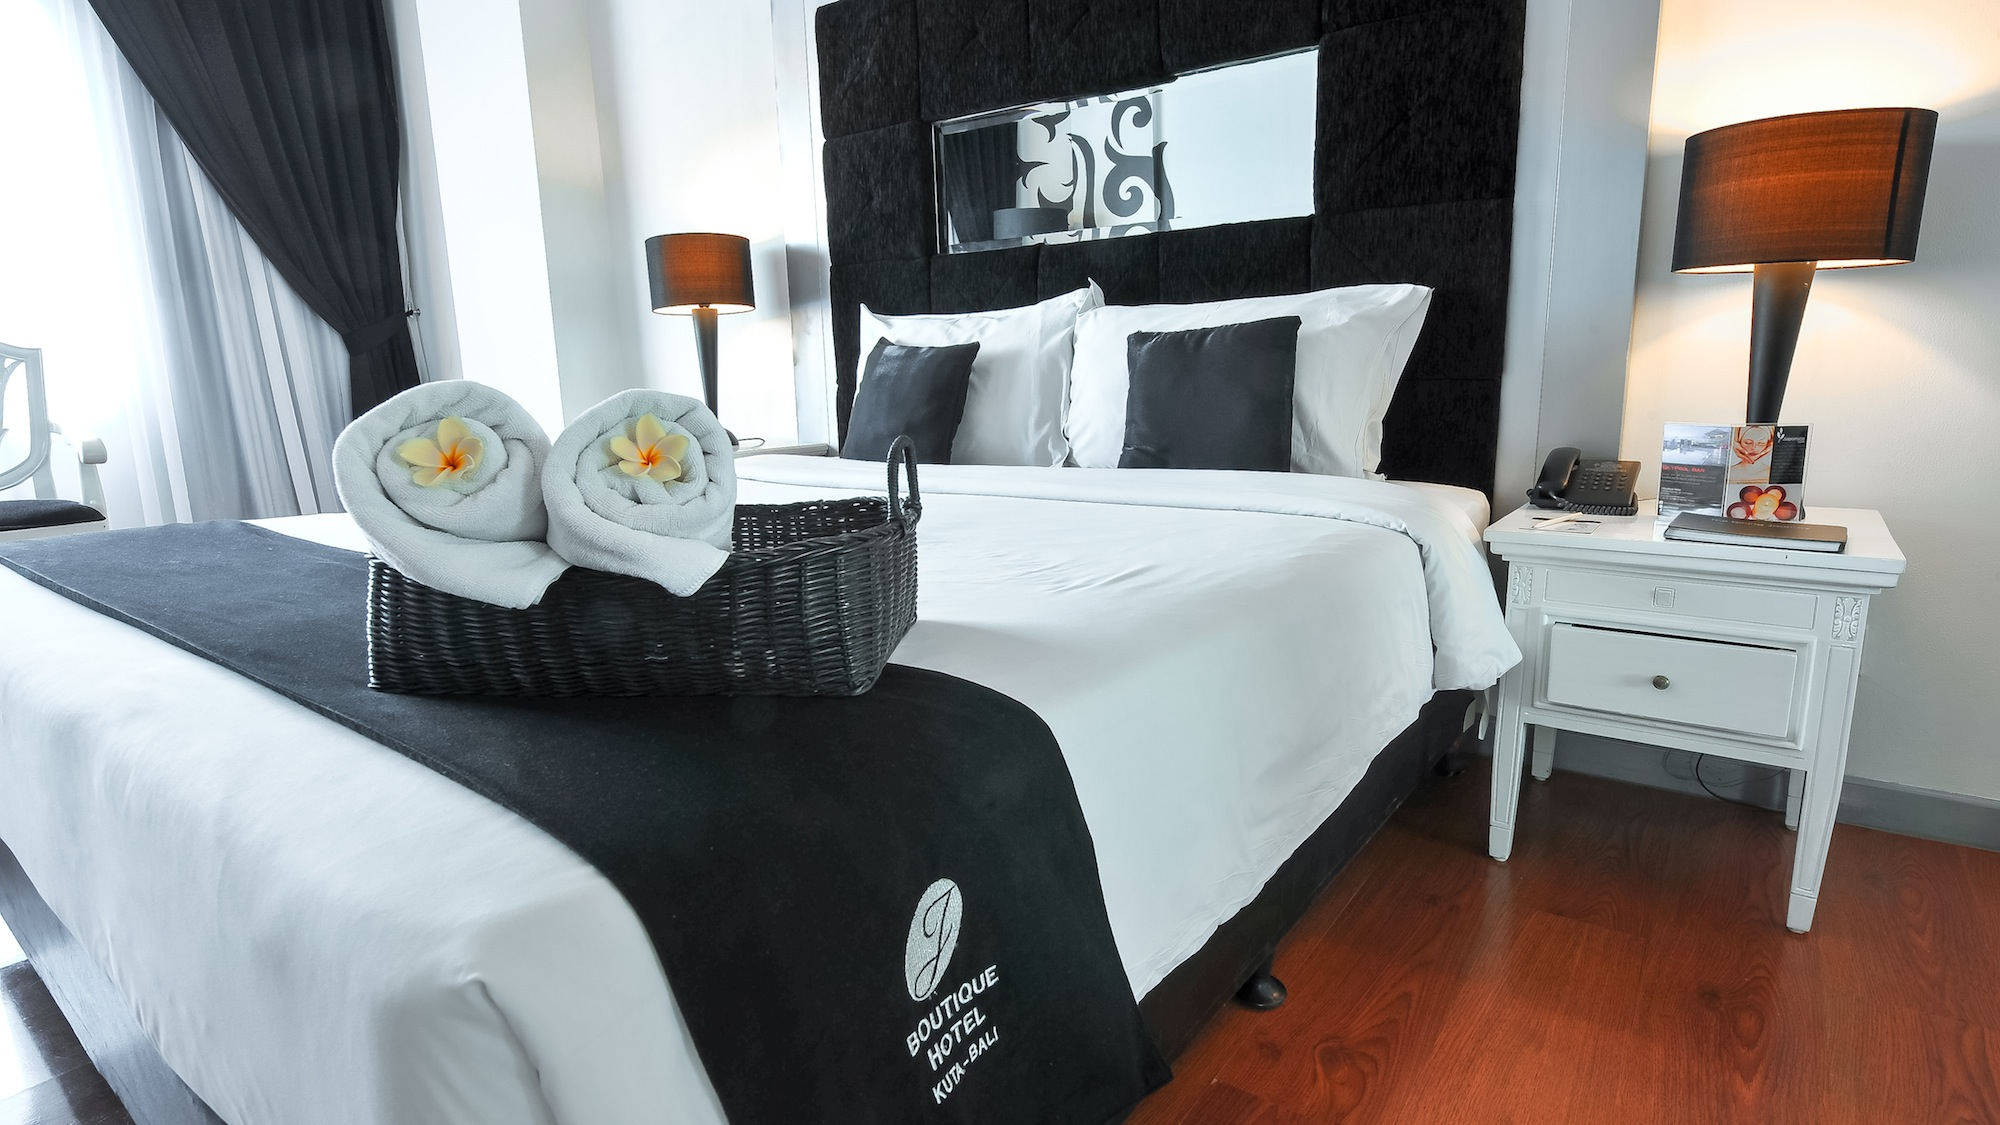 Stark Boutique Hotel and Spa